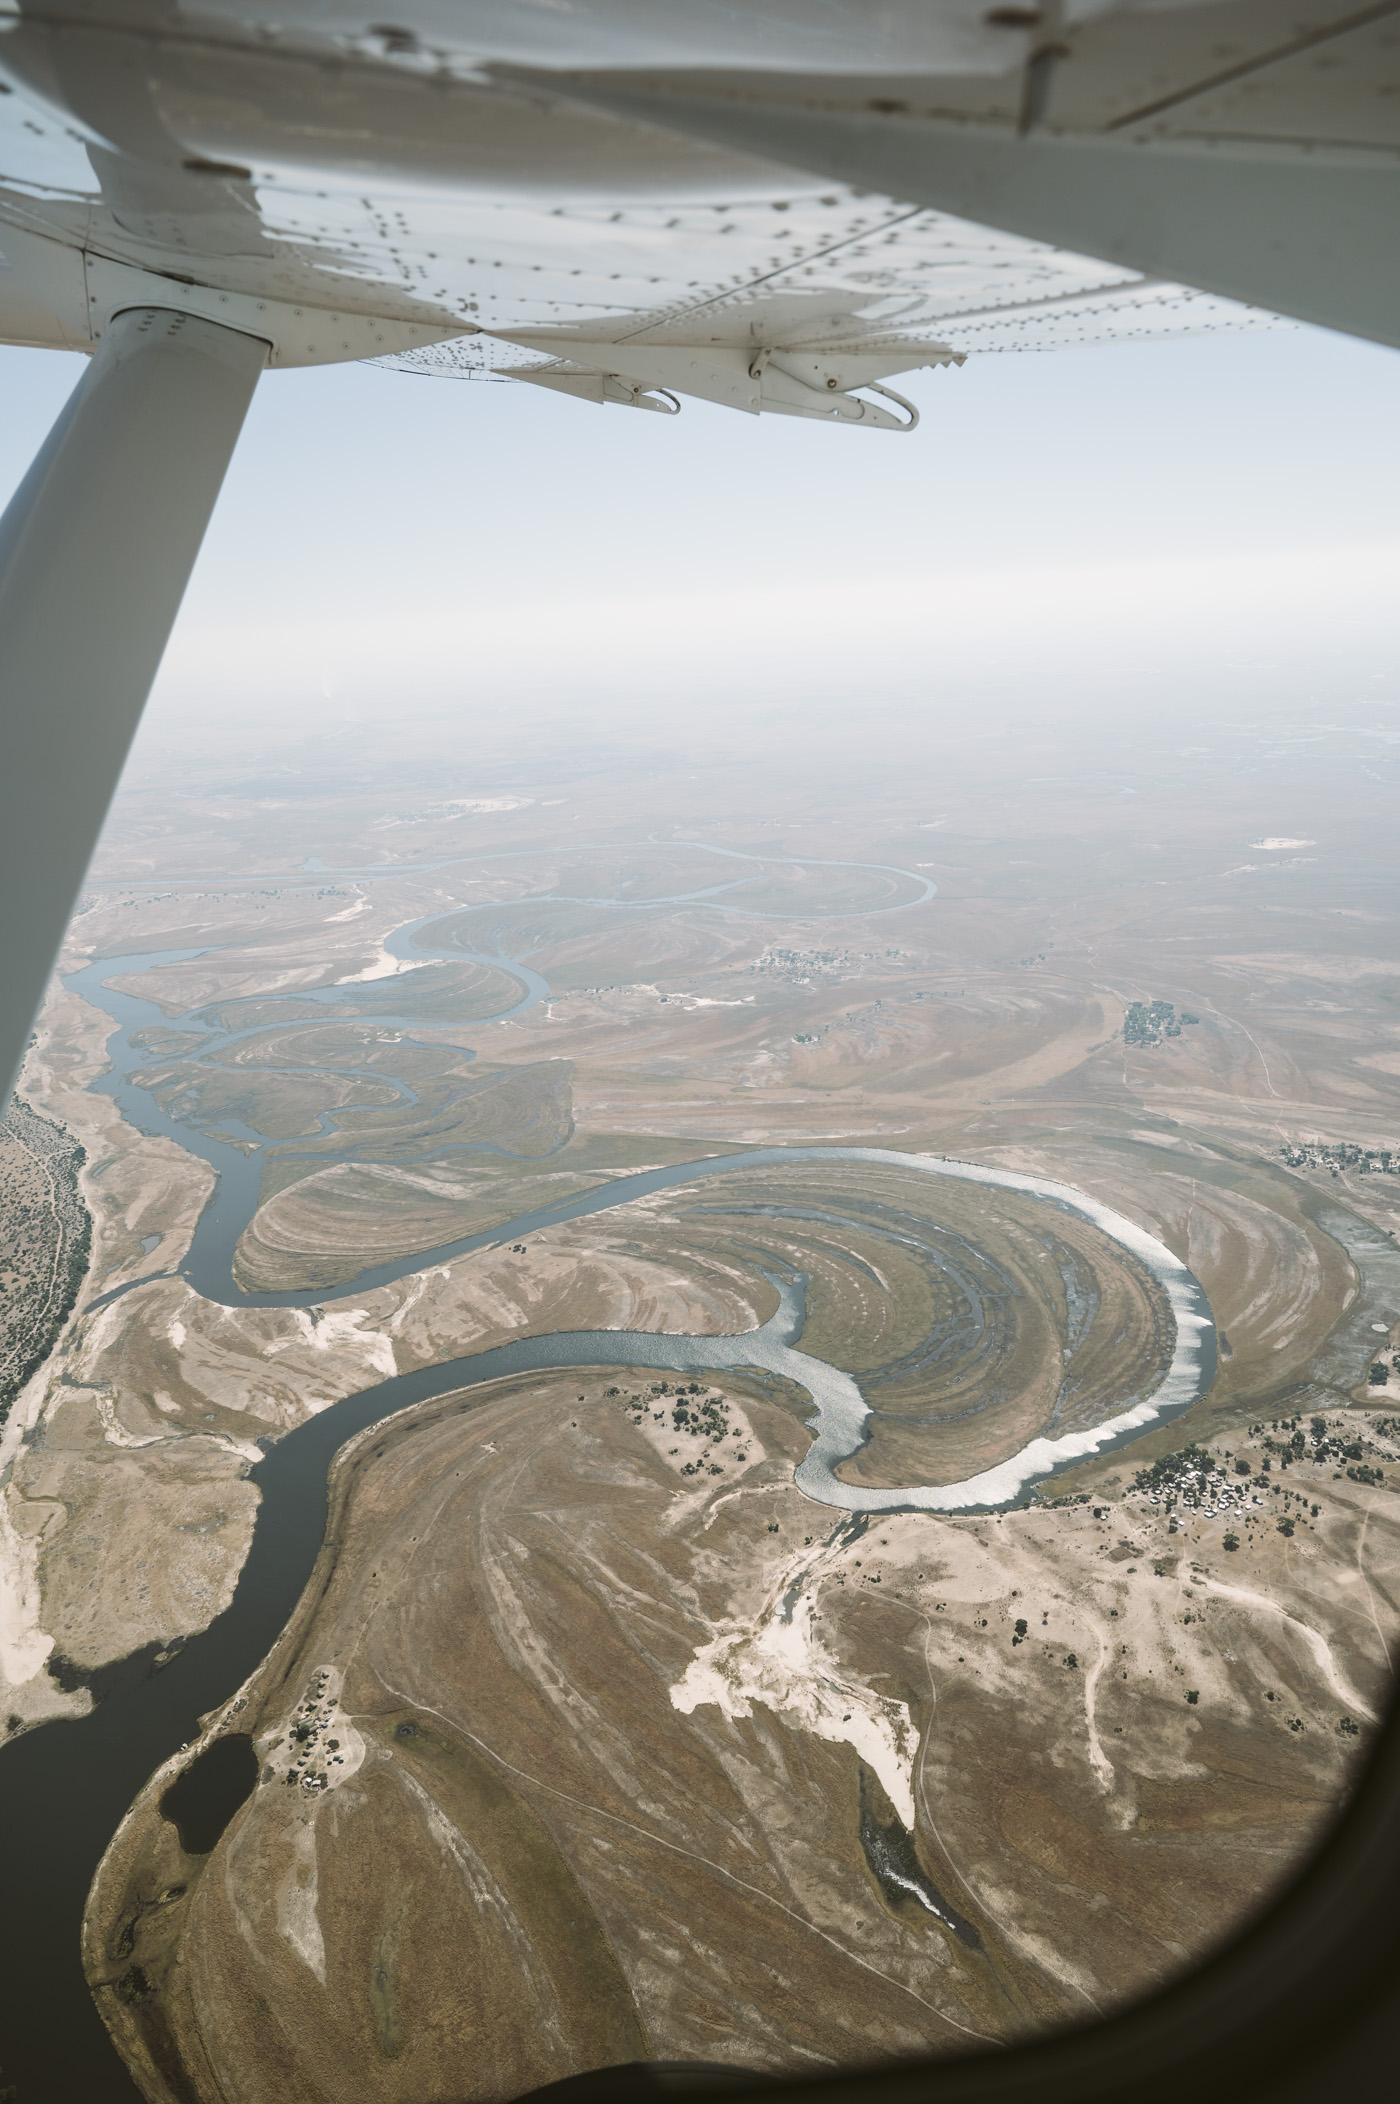 Flying into the Okavango Delta in Botswana